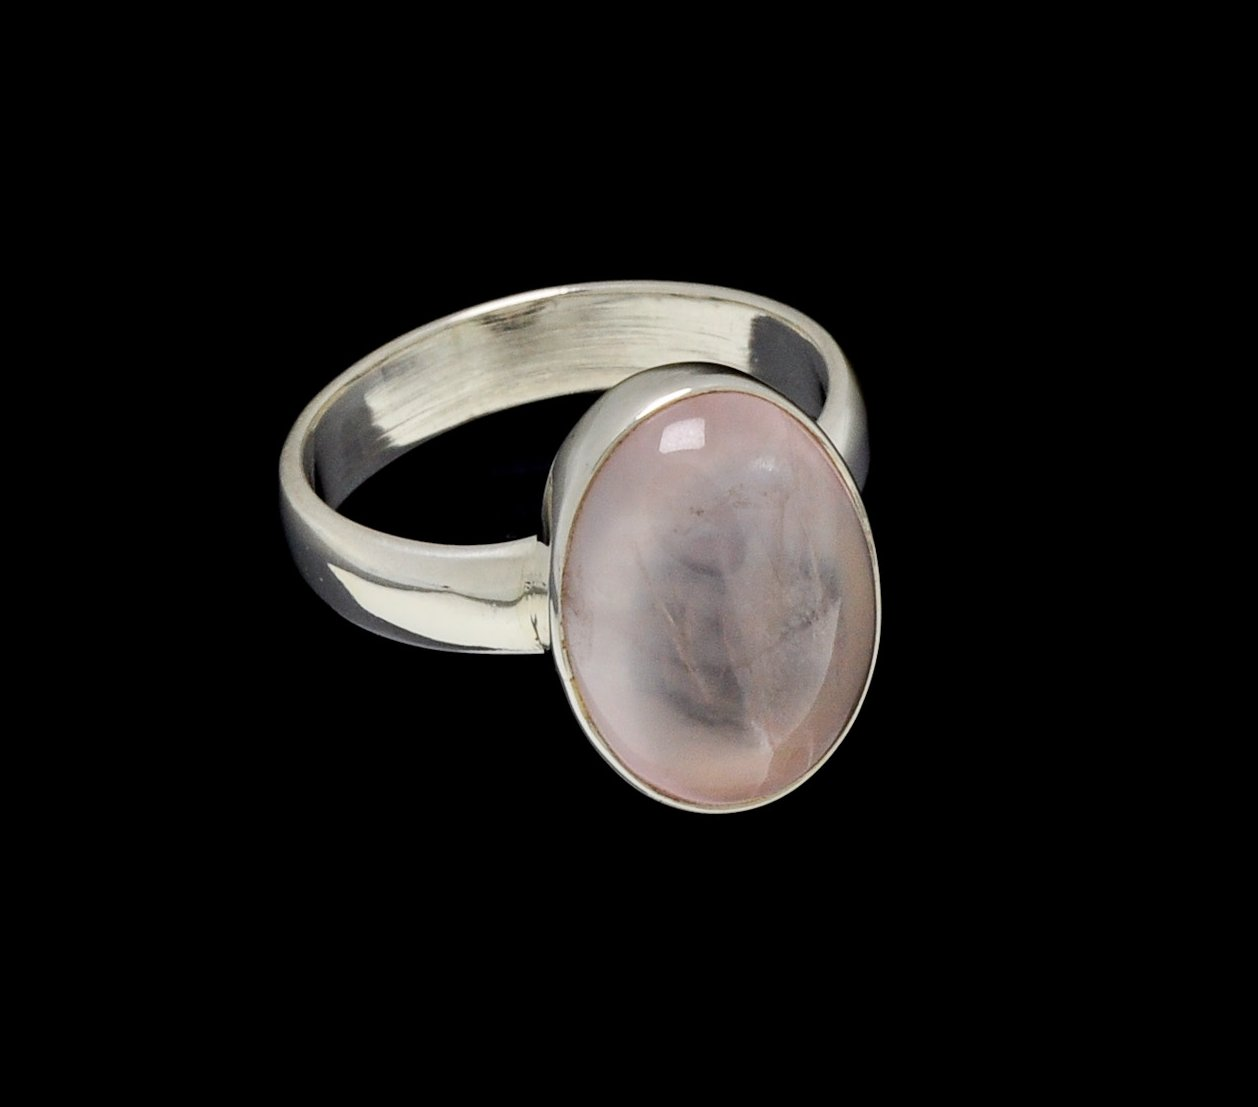 Rose Quartz Ring 15mm x 10mm Oval Cut